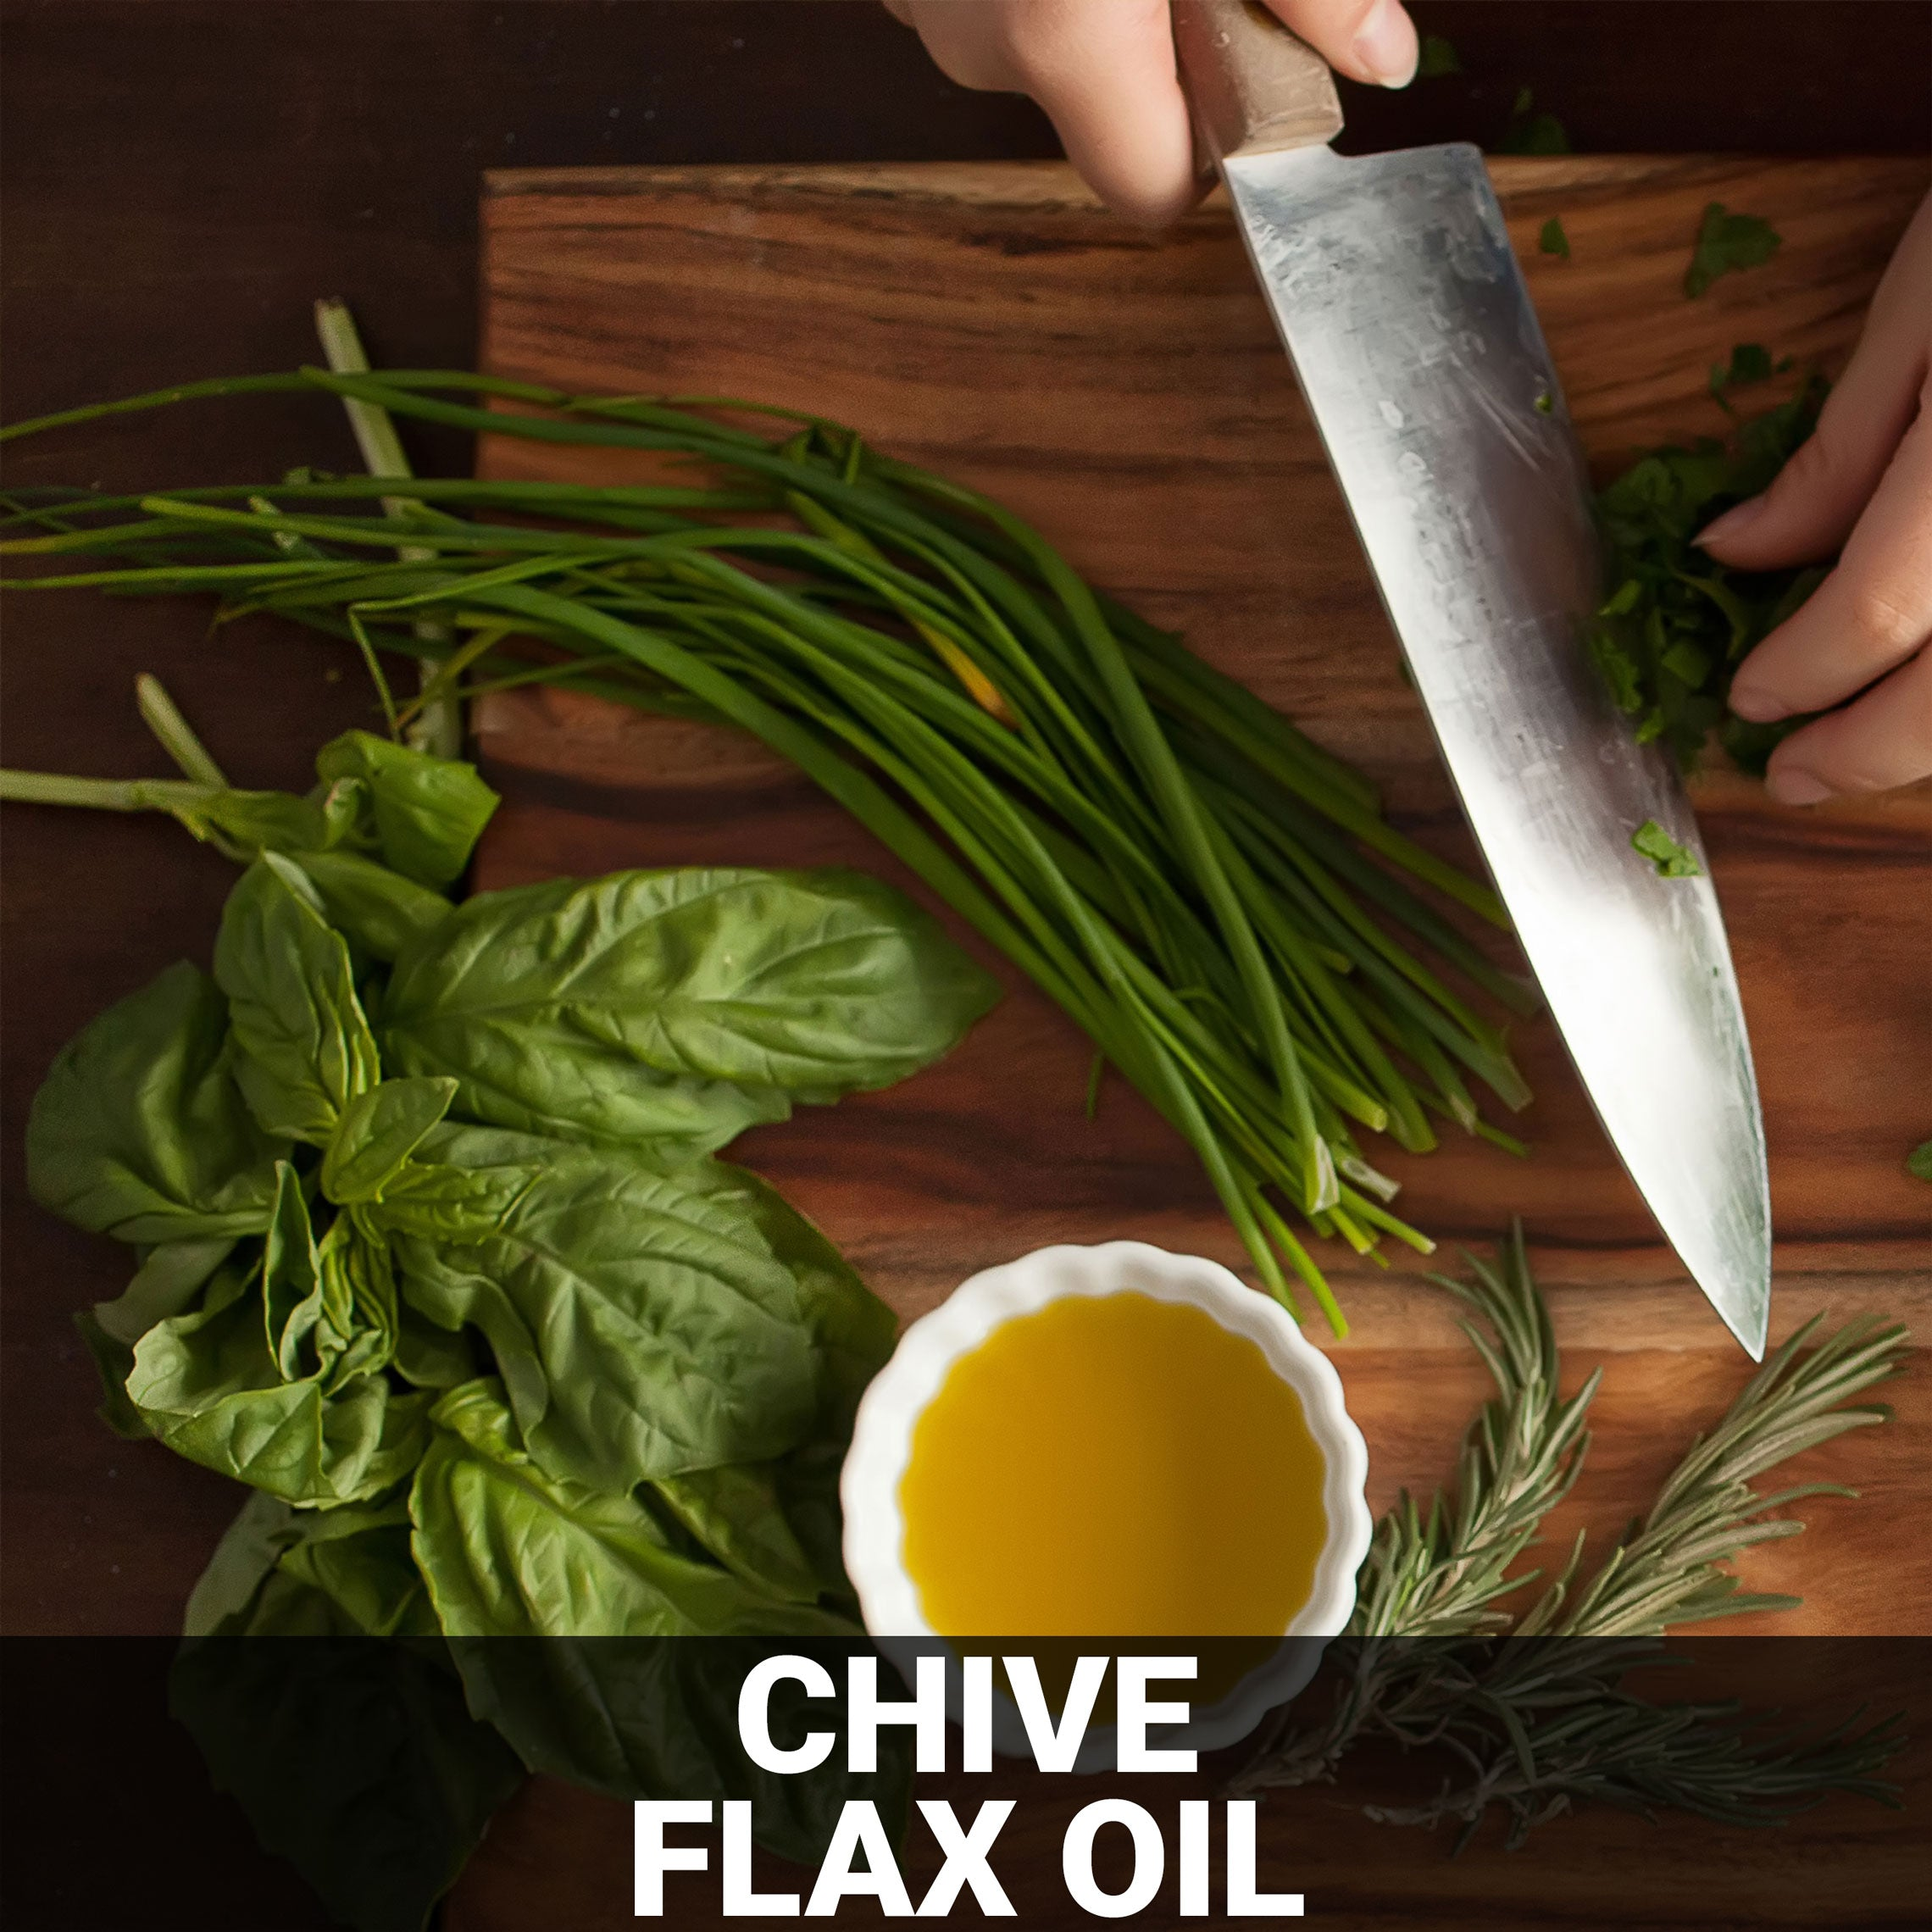 Chive Flax Oil Recipe - Foods Alive